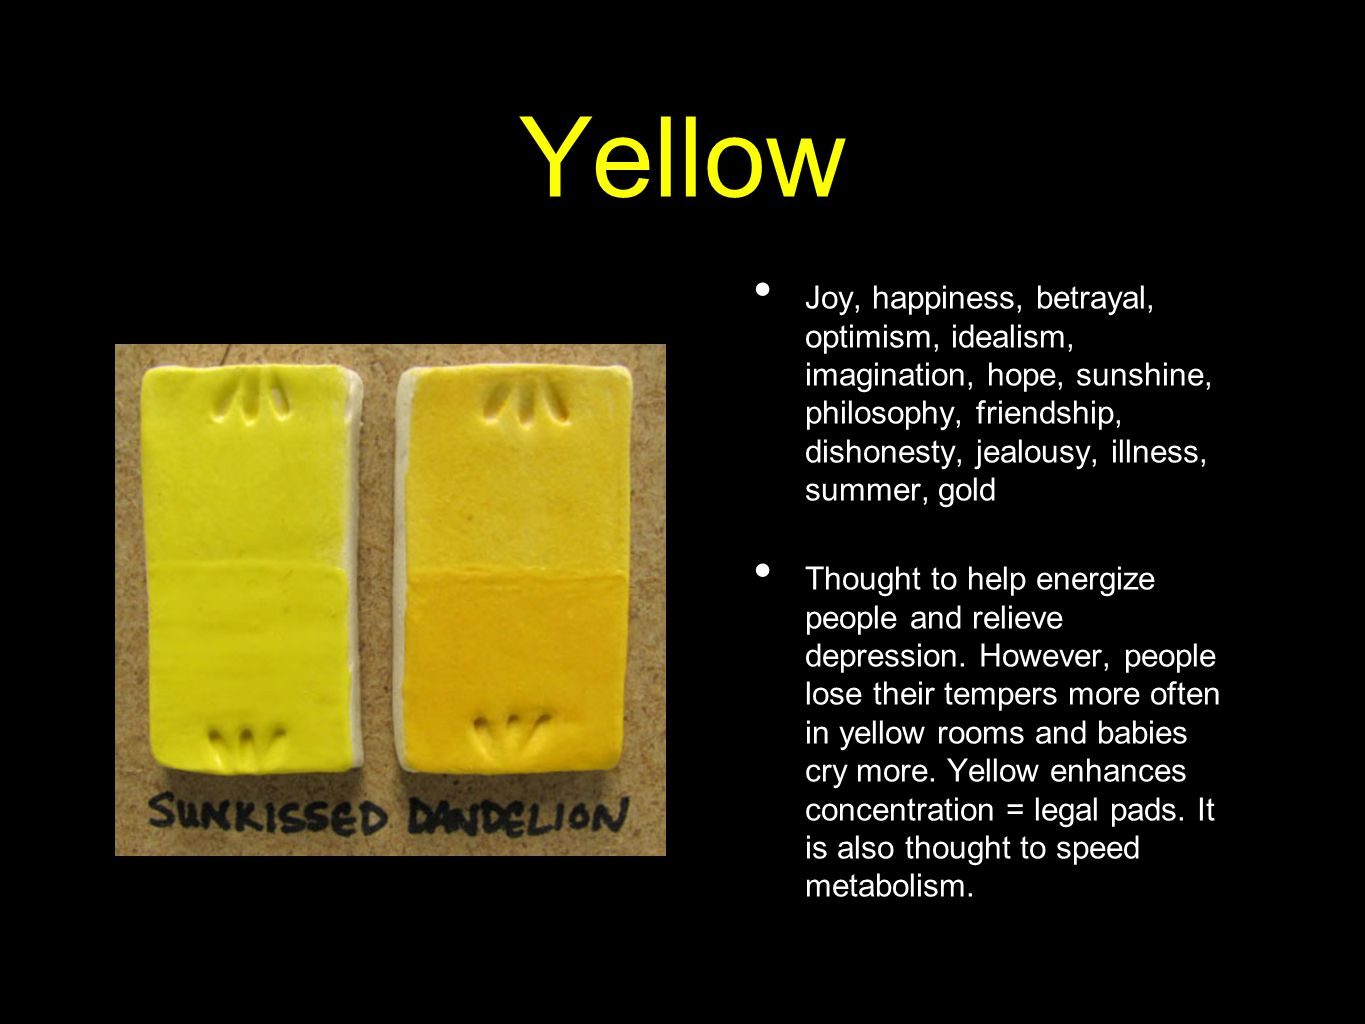 Yellow Joy, happiness, betrayal, optimism, idealism, imagination, hope, sunshine, philosophy, friendship, dishonesty, jealousy, illness, summer, gold Thought to help energize people and relieve depression.